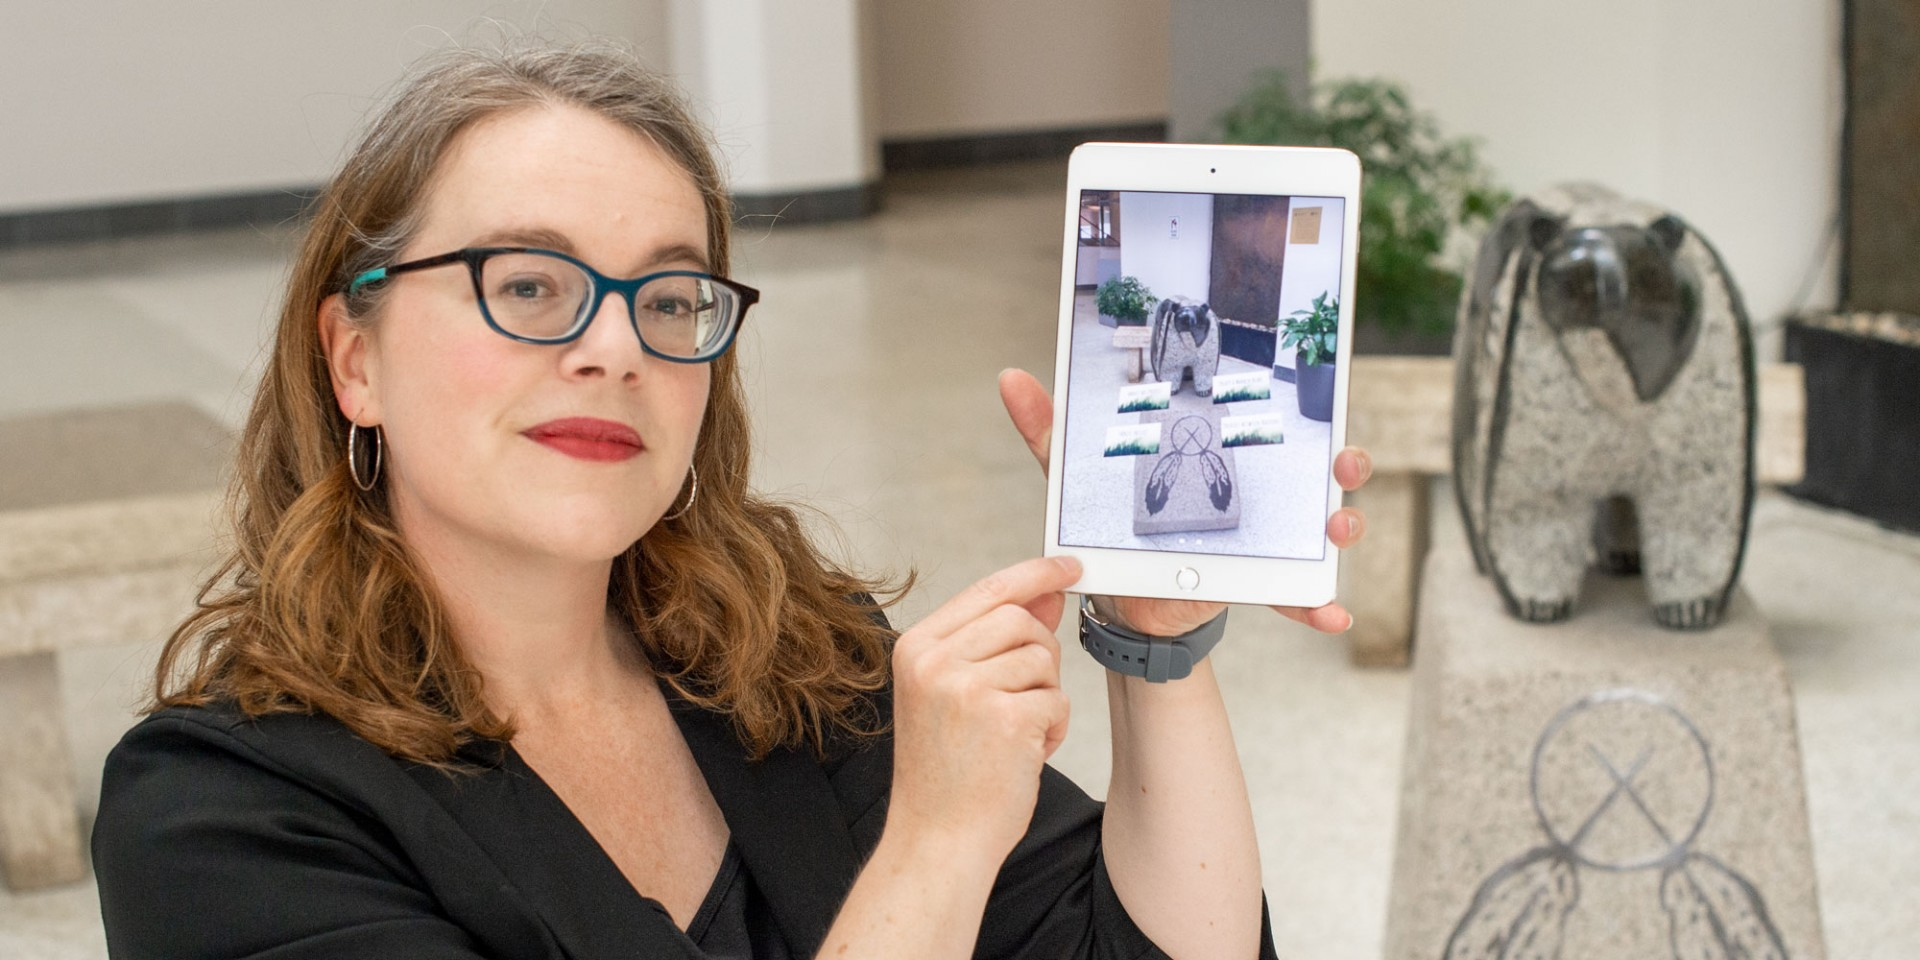 Master's student Amanda Almond shows how a new augmented-reality app lets users access video stories by hovering their electronic devices over the Sweetgrass Bear sculpture at the U of A's Enterprise Square campus in downtown Edmonton. (Photo: Richard Siemens)